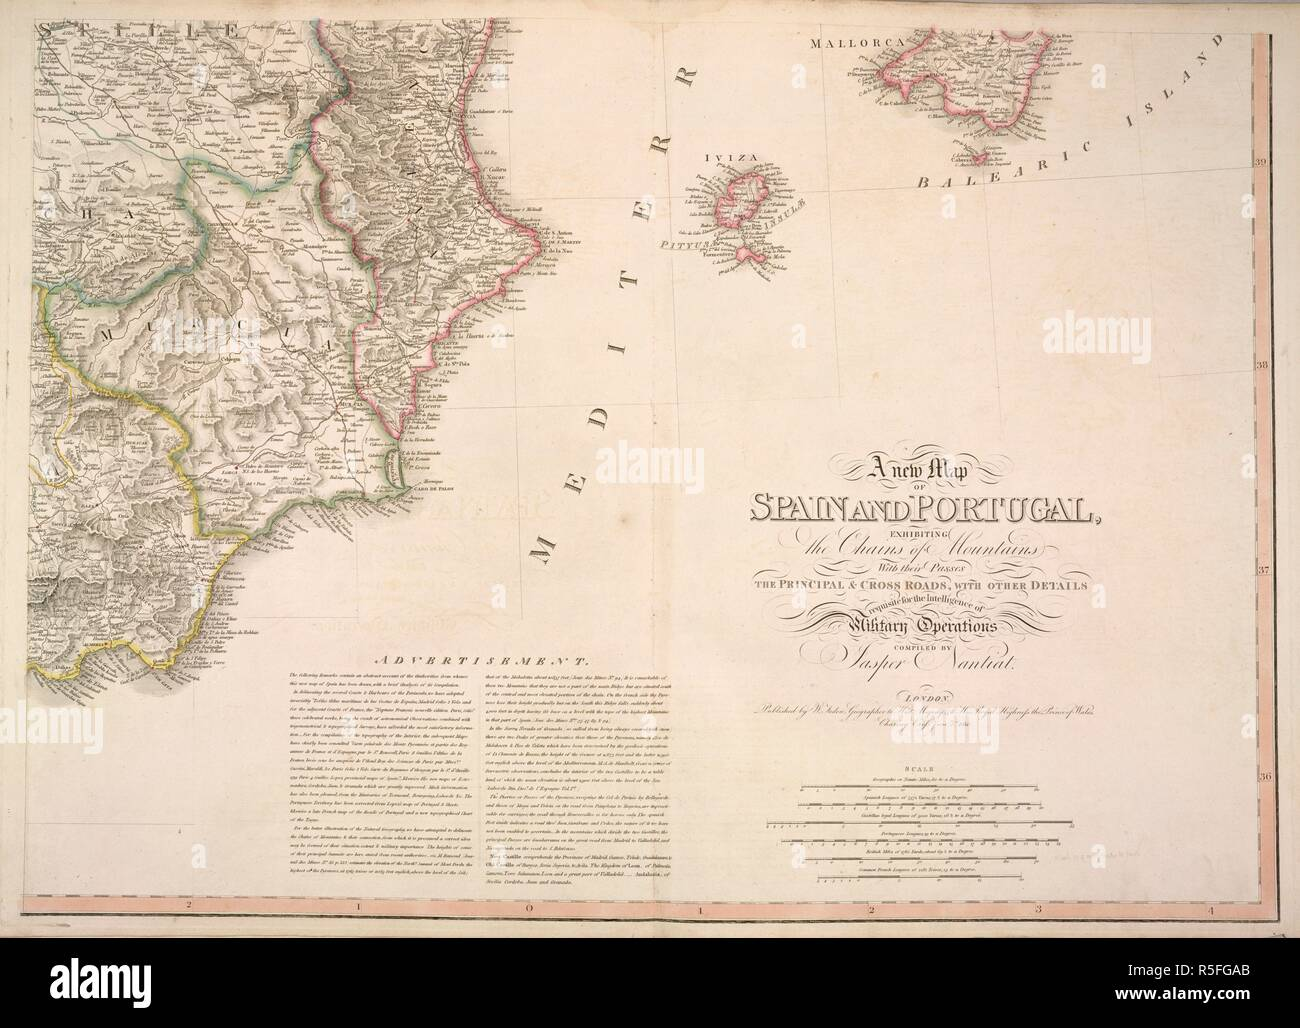 Map Of East Coast Of Spain.Map Of The East Coast Of Spain Showing Castilla Murcia